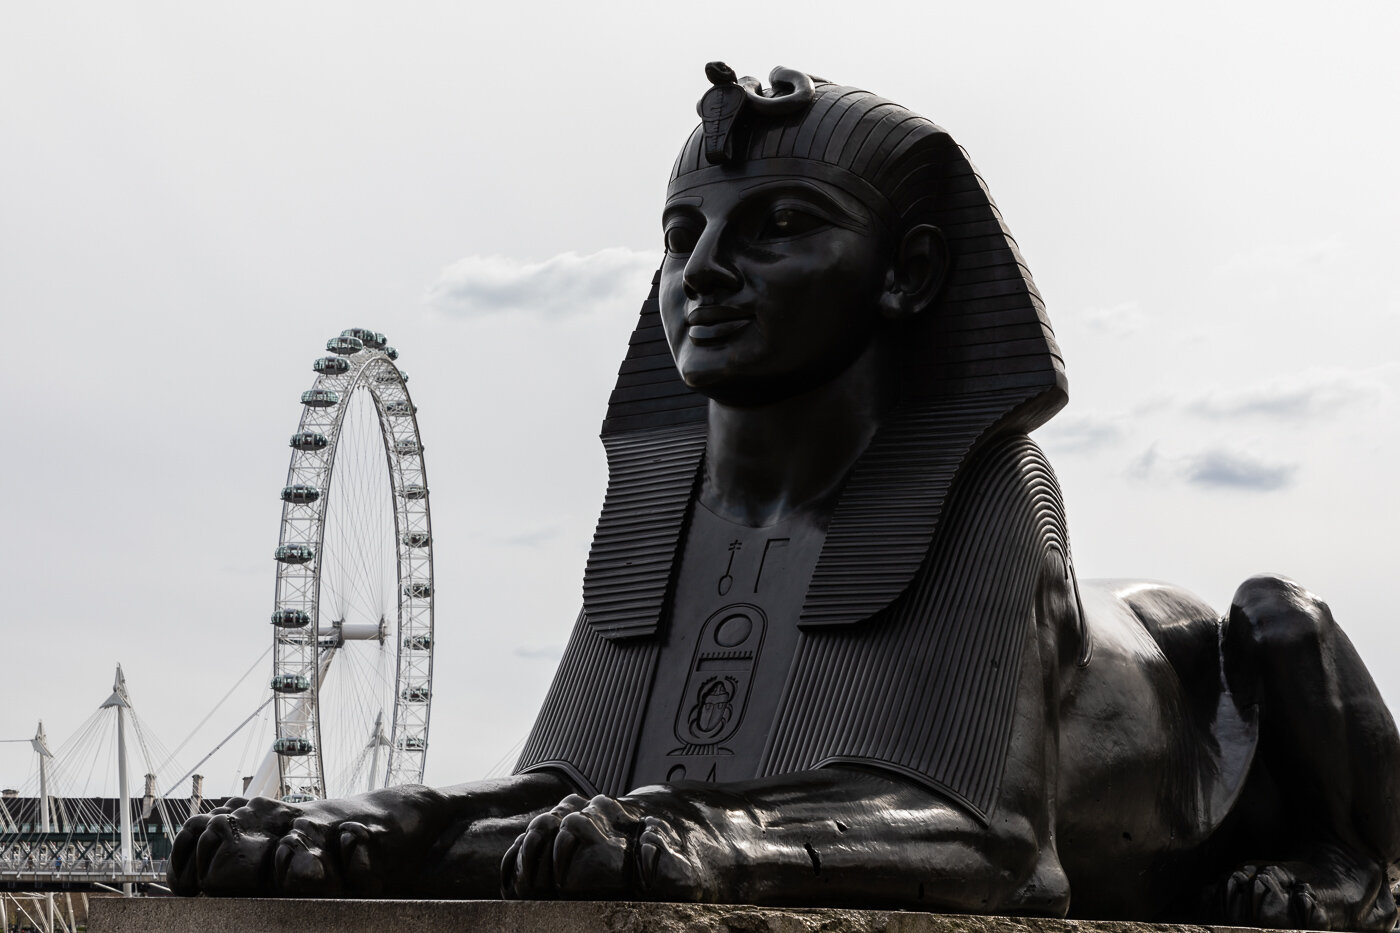 The London Eye and the Sphinx